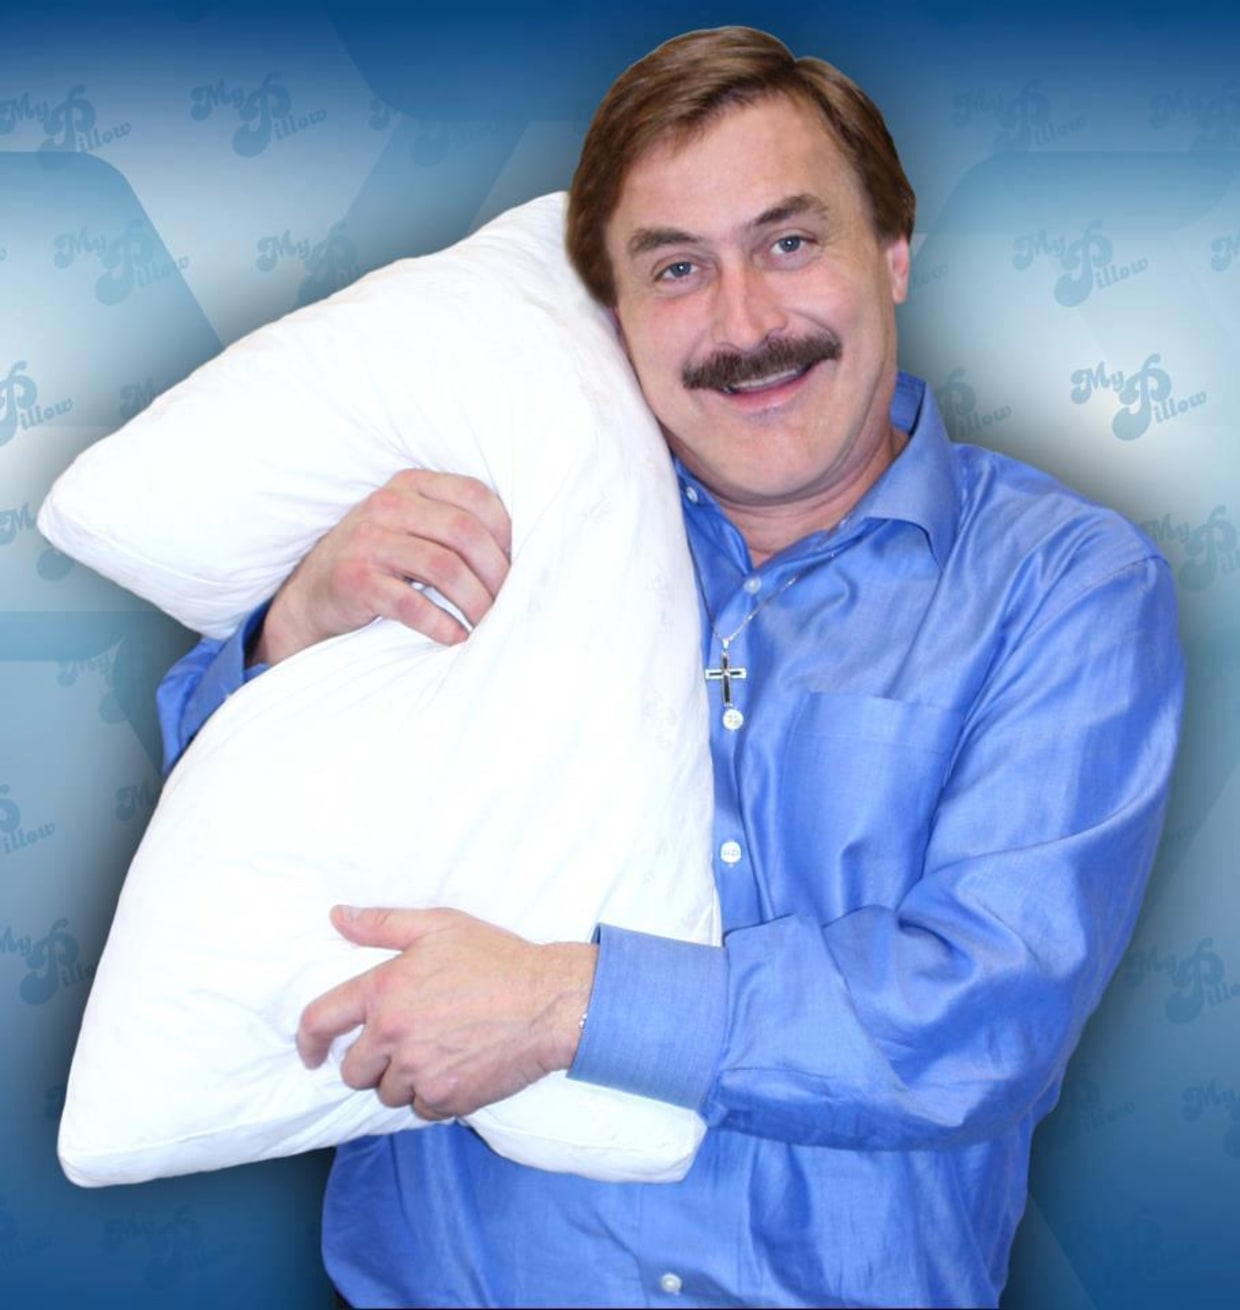 Full of Fluff? MyPillow Ordered to Pay $1M for Bogus Ads